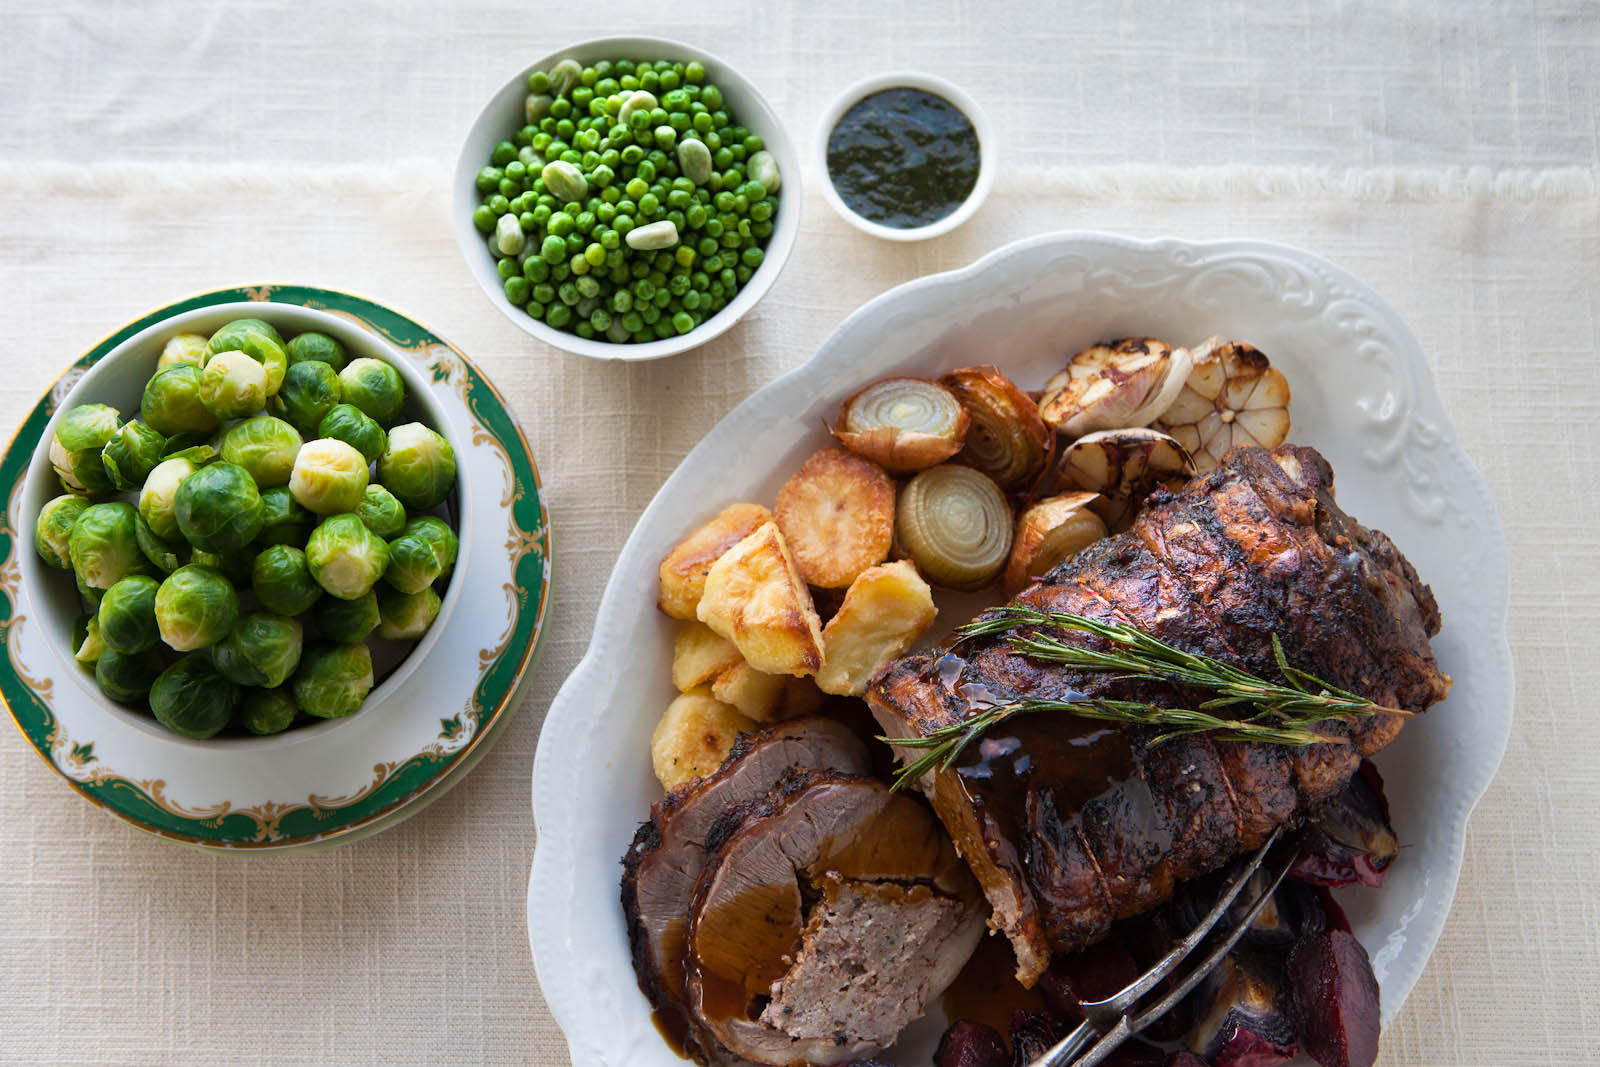 Whole saddle of lamb with mint and rosemary